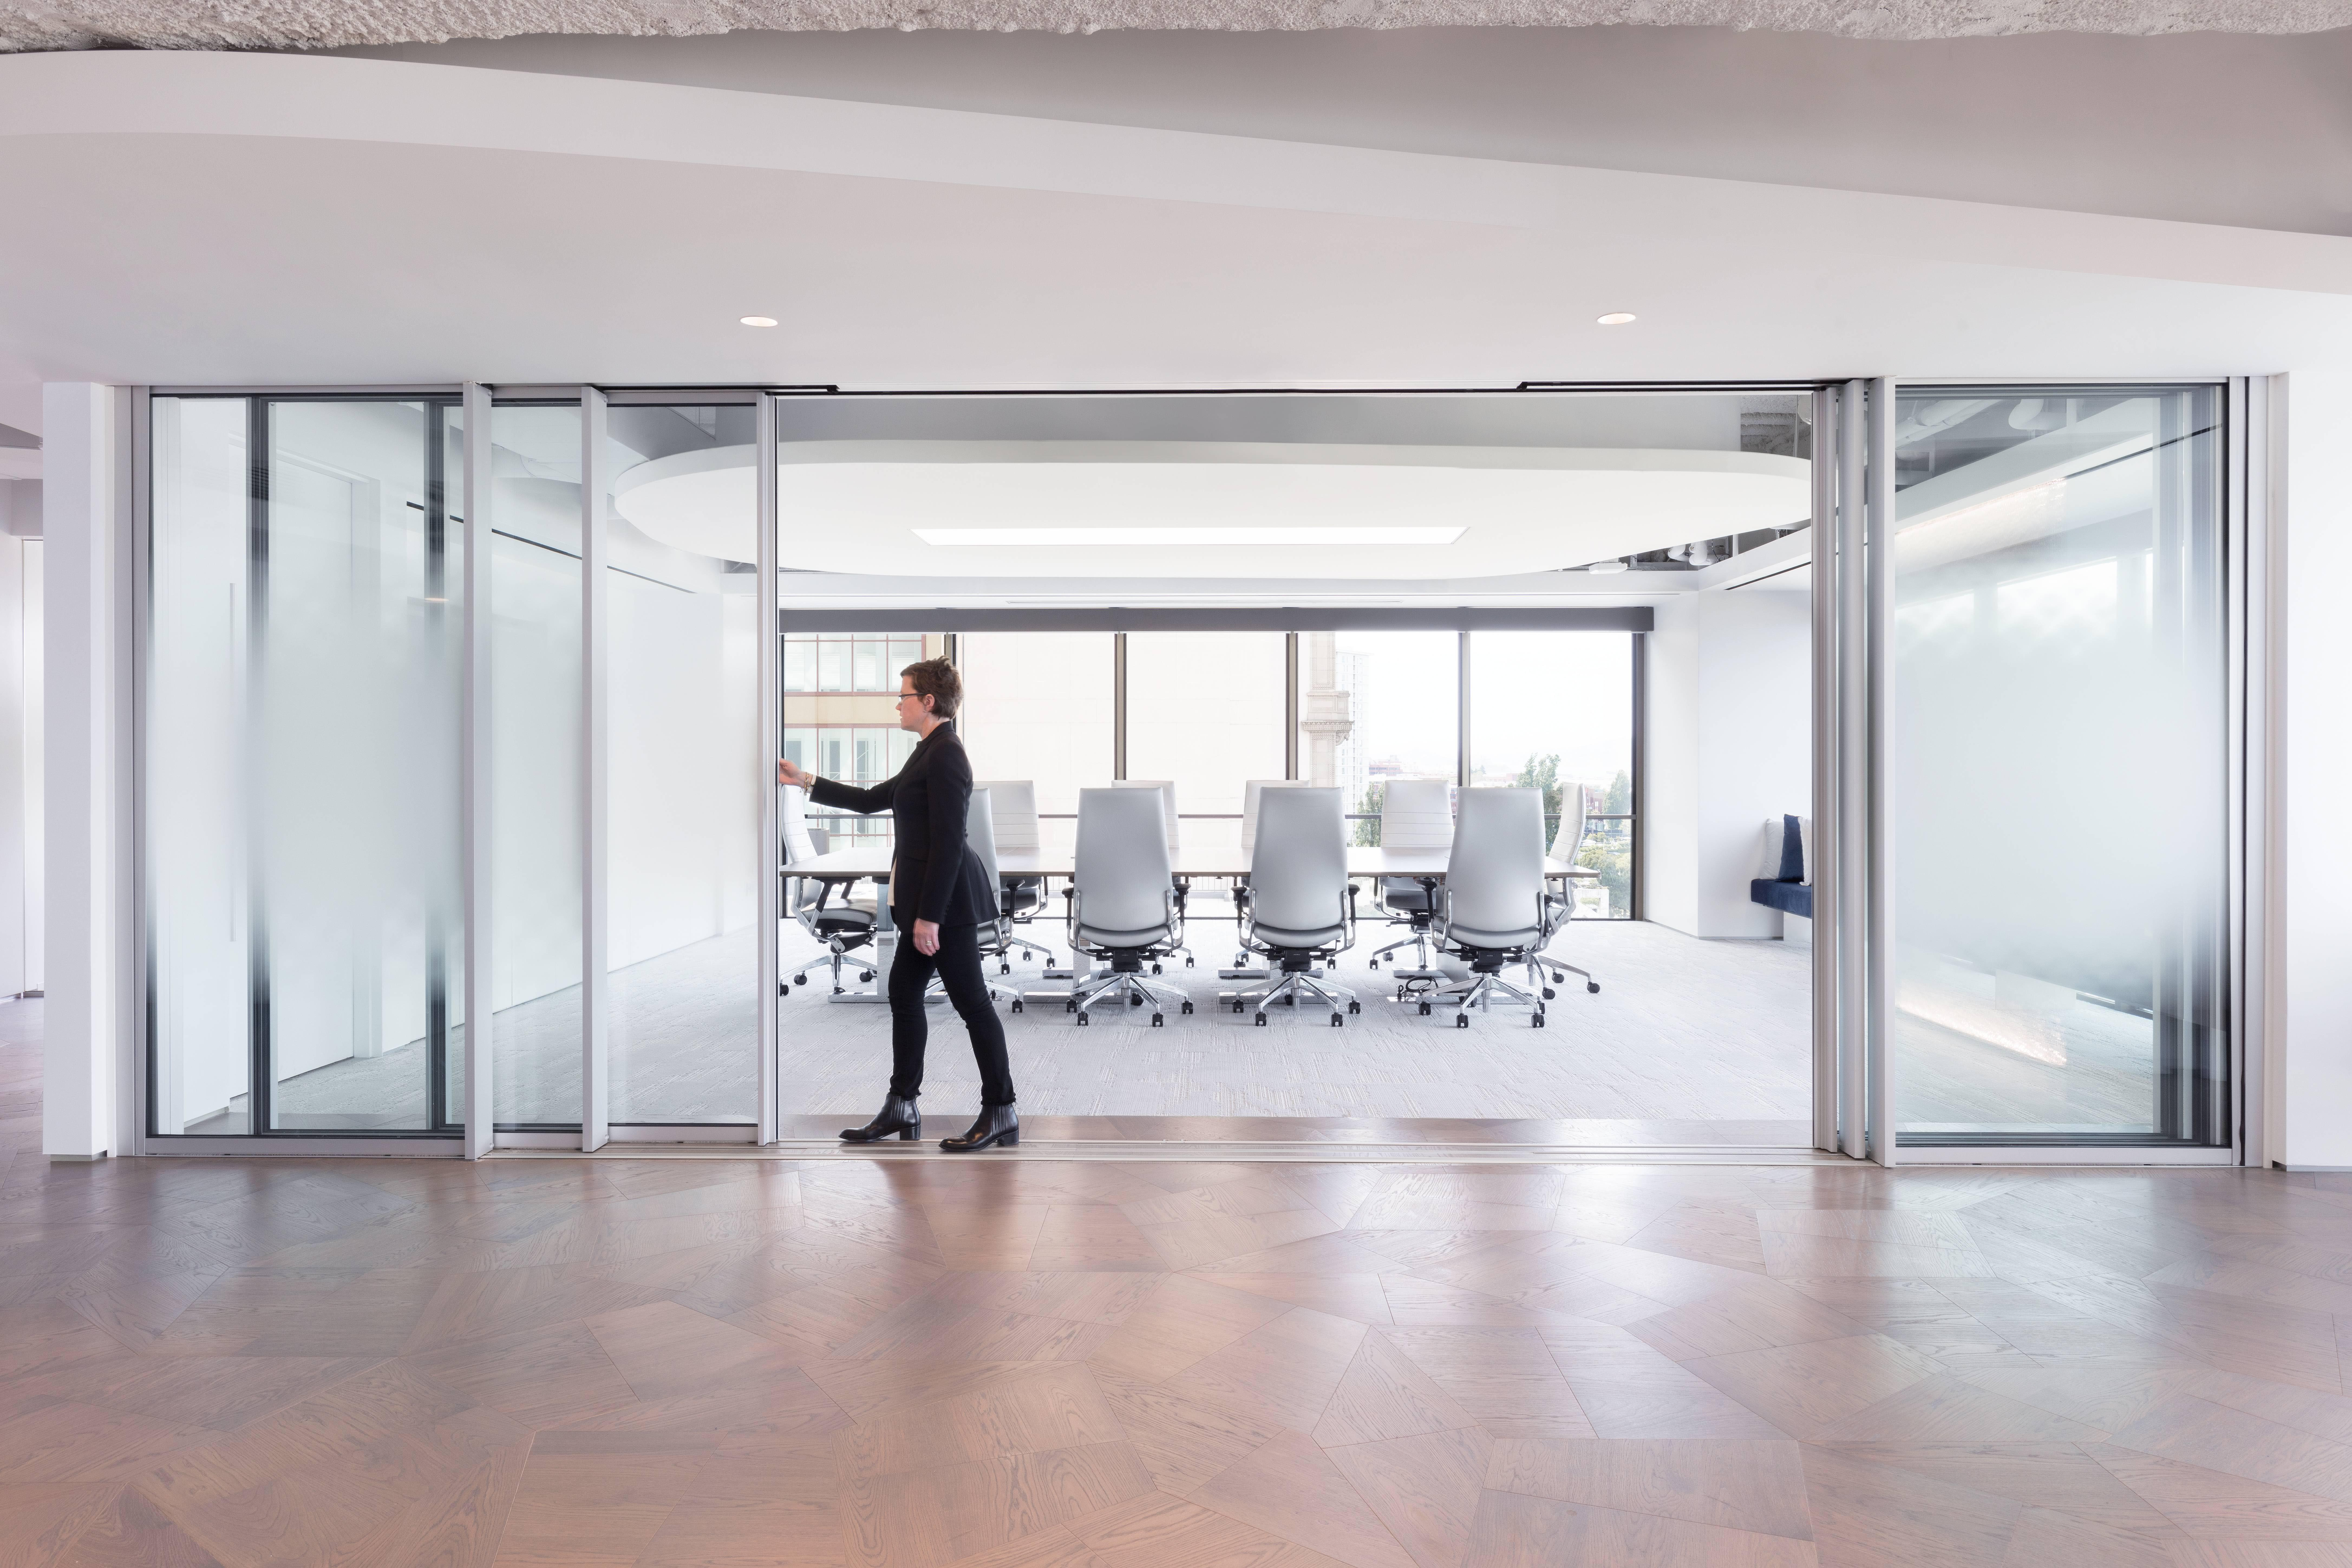 minimal sliding glass wall with beautiful aesthetics in an office